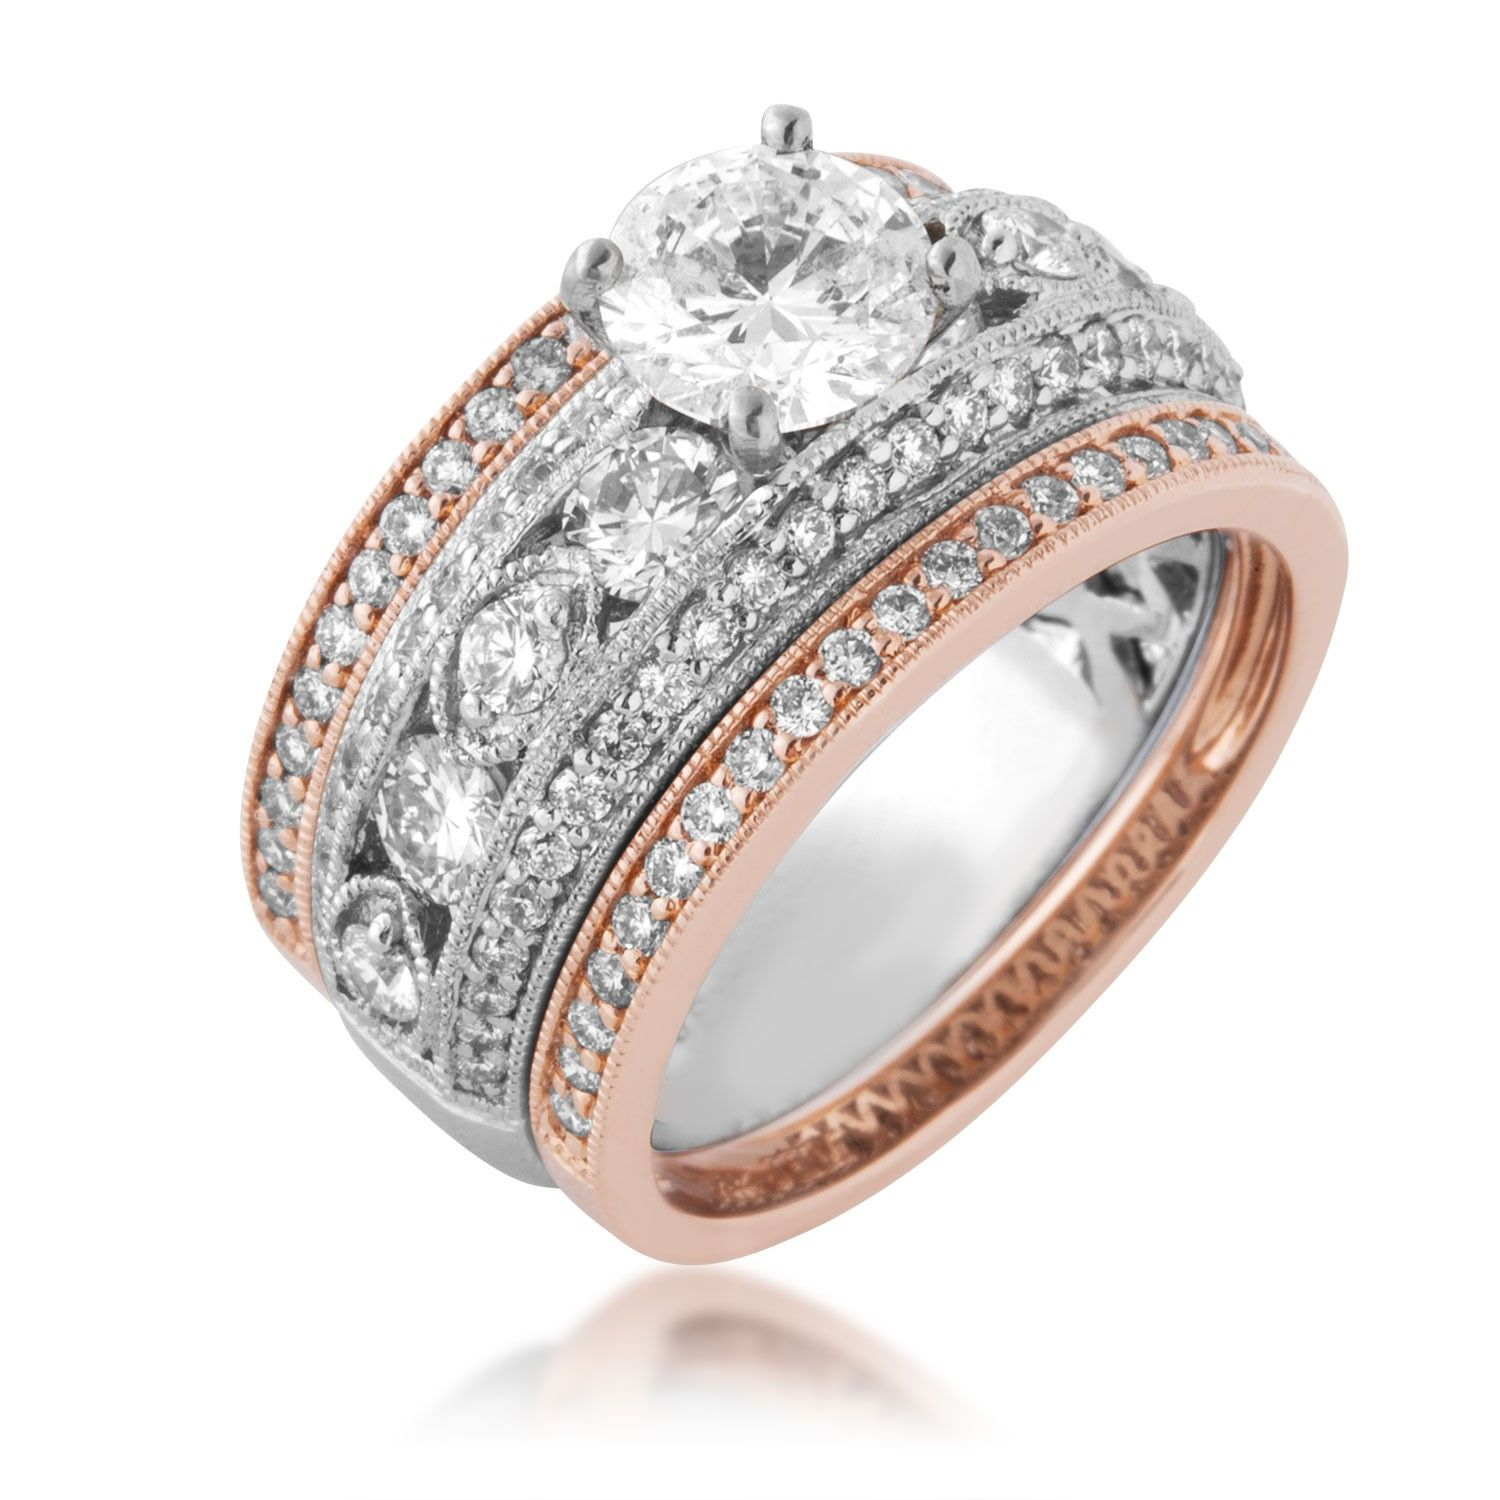 La s White Diamond Bridal Set Ring in Pink and White Gold